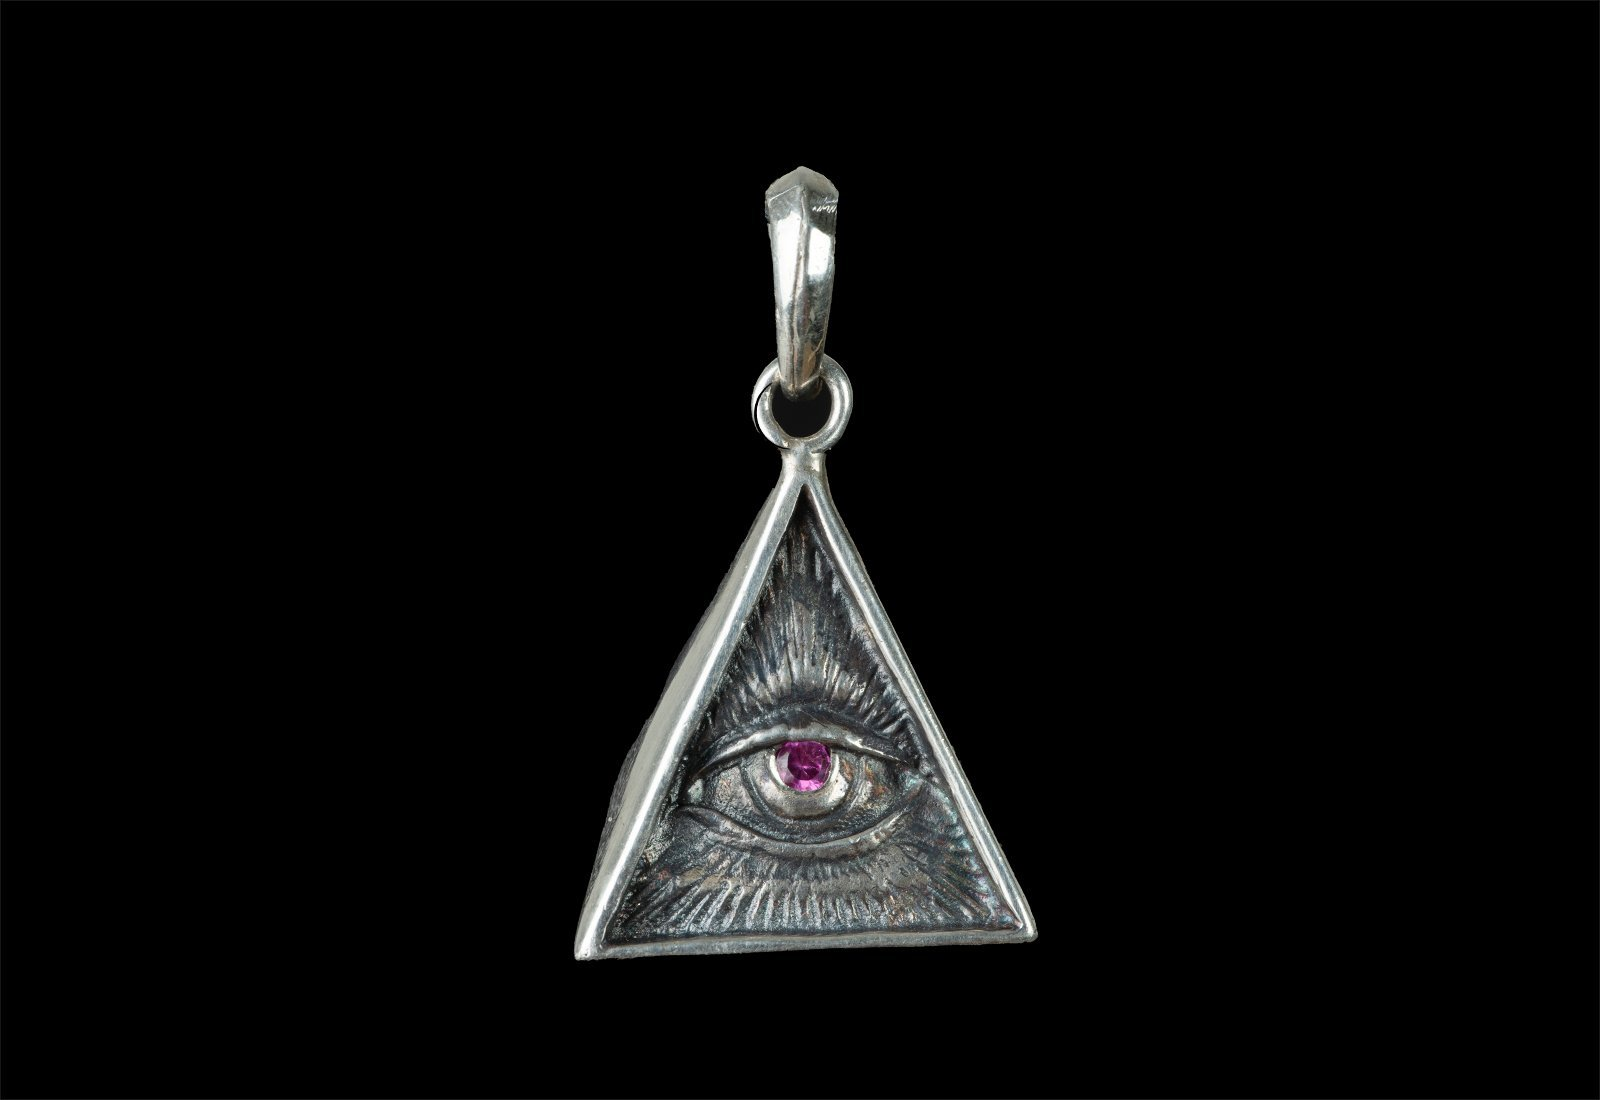 ROCK STAR EYE OF PROVIDENCE TRIANGLE (CON RUBI)